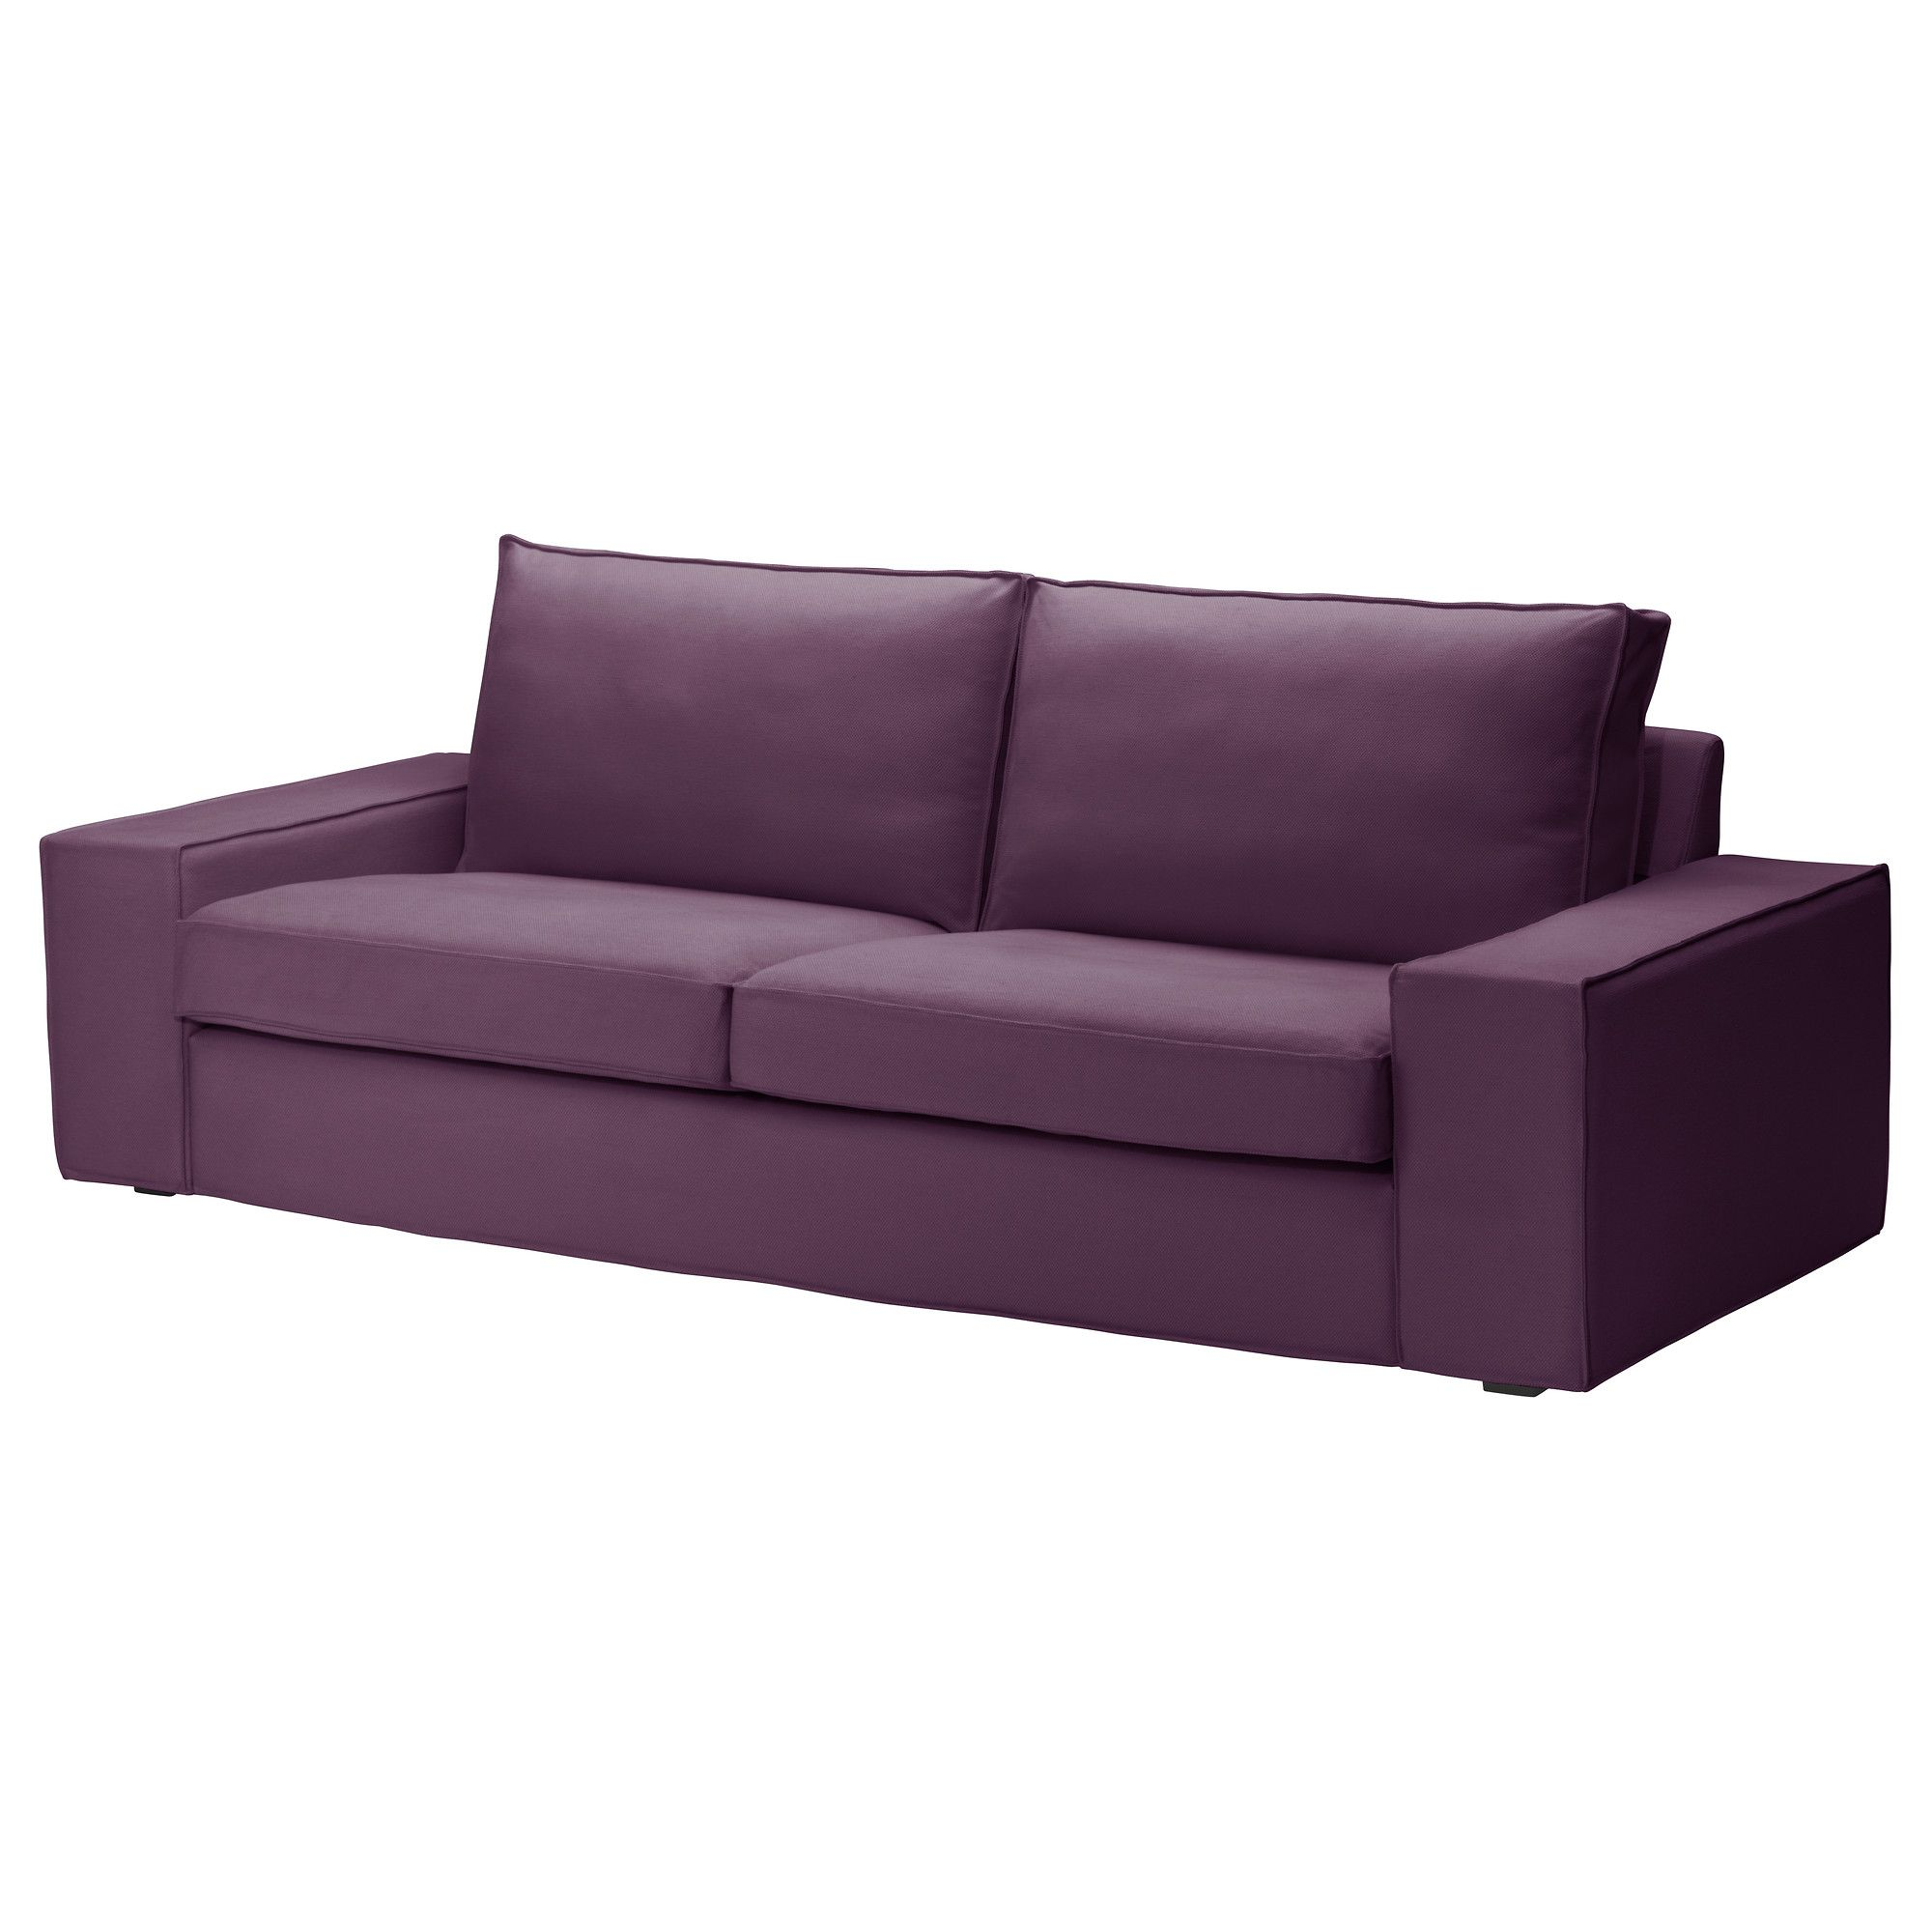 Ikea Us Furniture And Home Furnishings Ikea Sofa Kivik Sofa Ikea Couch